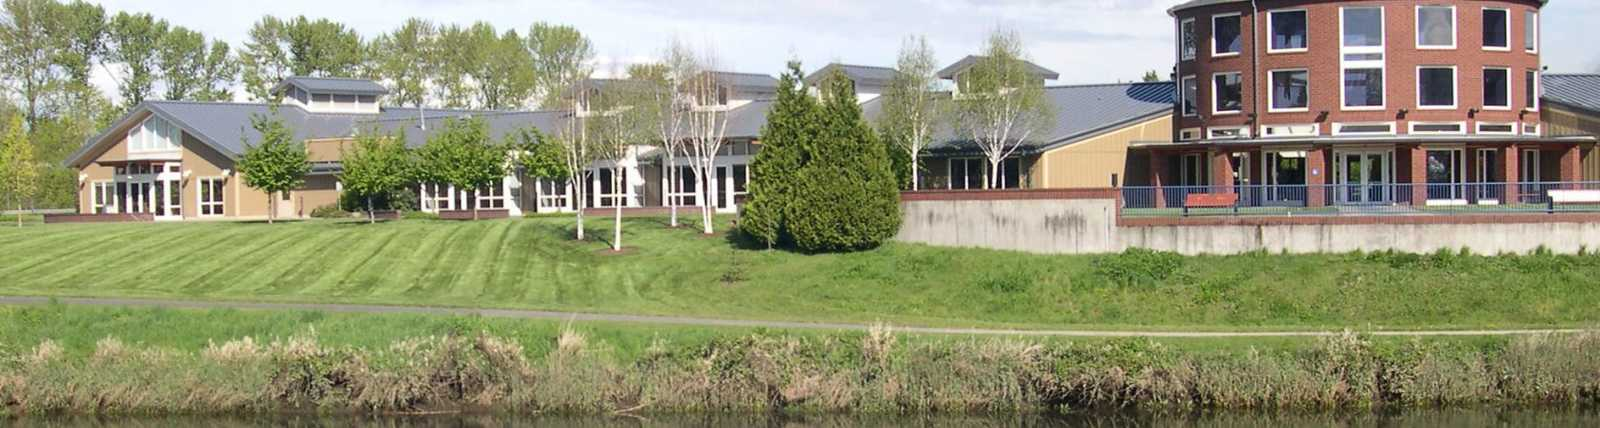 Tukwila Community Center & Duwamish River